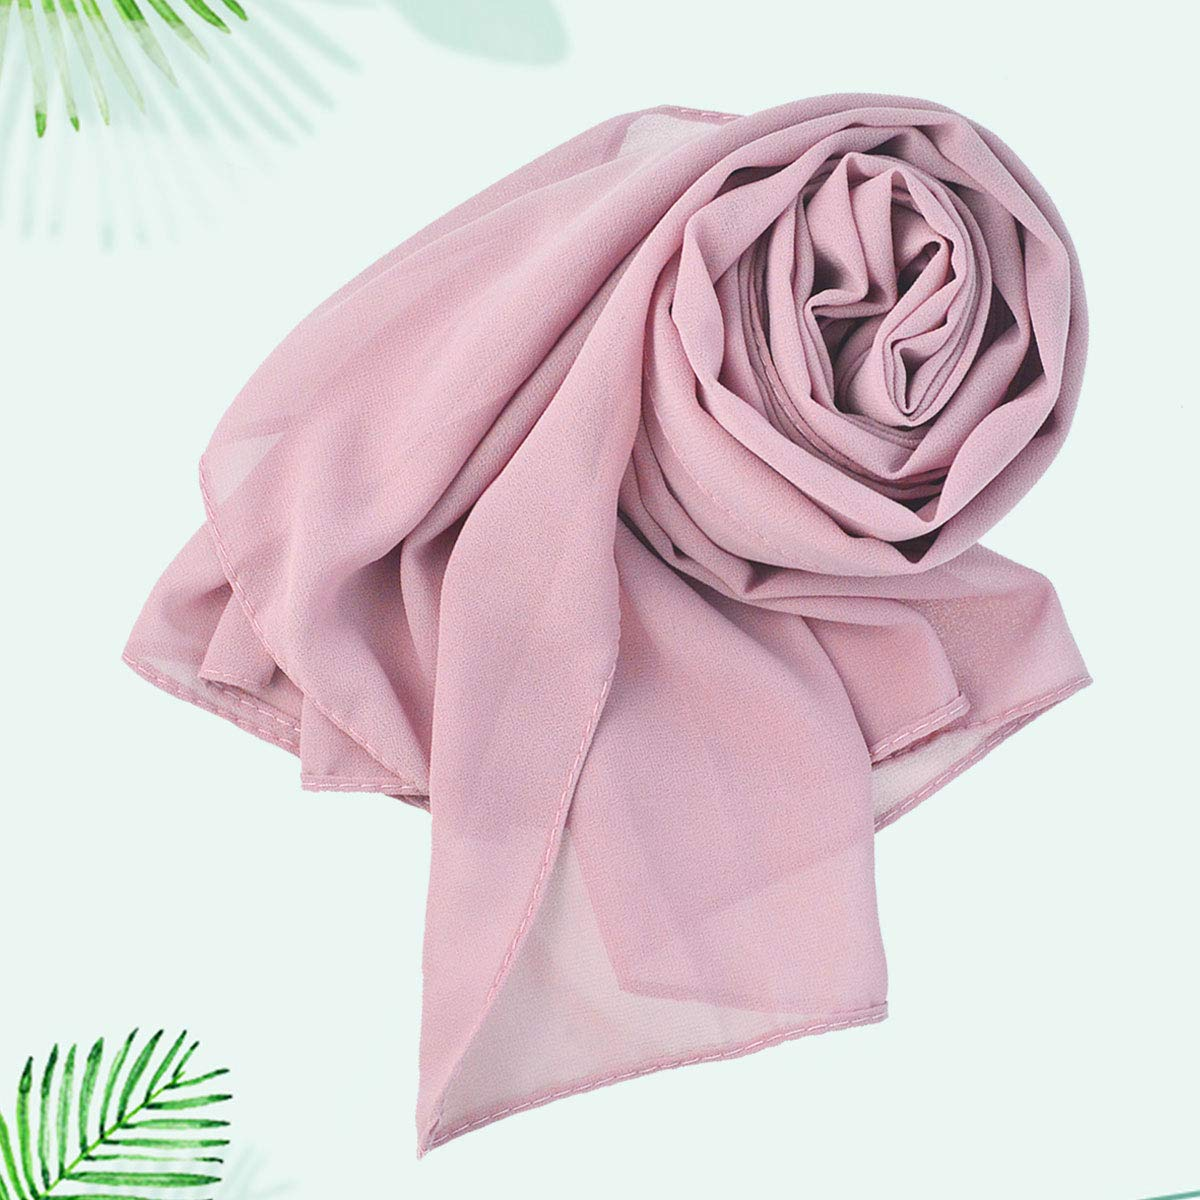 373f1240f6868 Amazon.com: Wobe 3pcs Women Soft Chiffon Scarves Shawl Long Scarf, Travel  Sunscreen Summer Beach Cover Wrap Bridal Hijab Scarf Muslin Head Scarves:  Home & ...